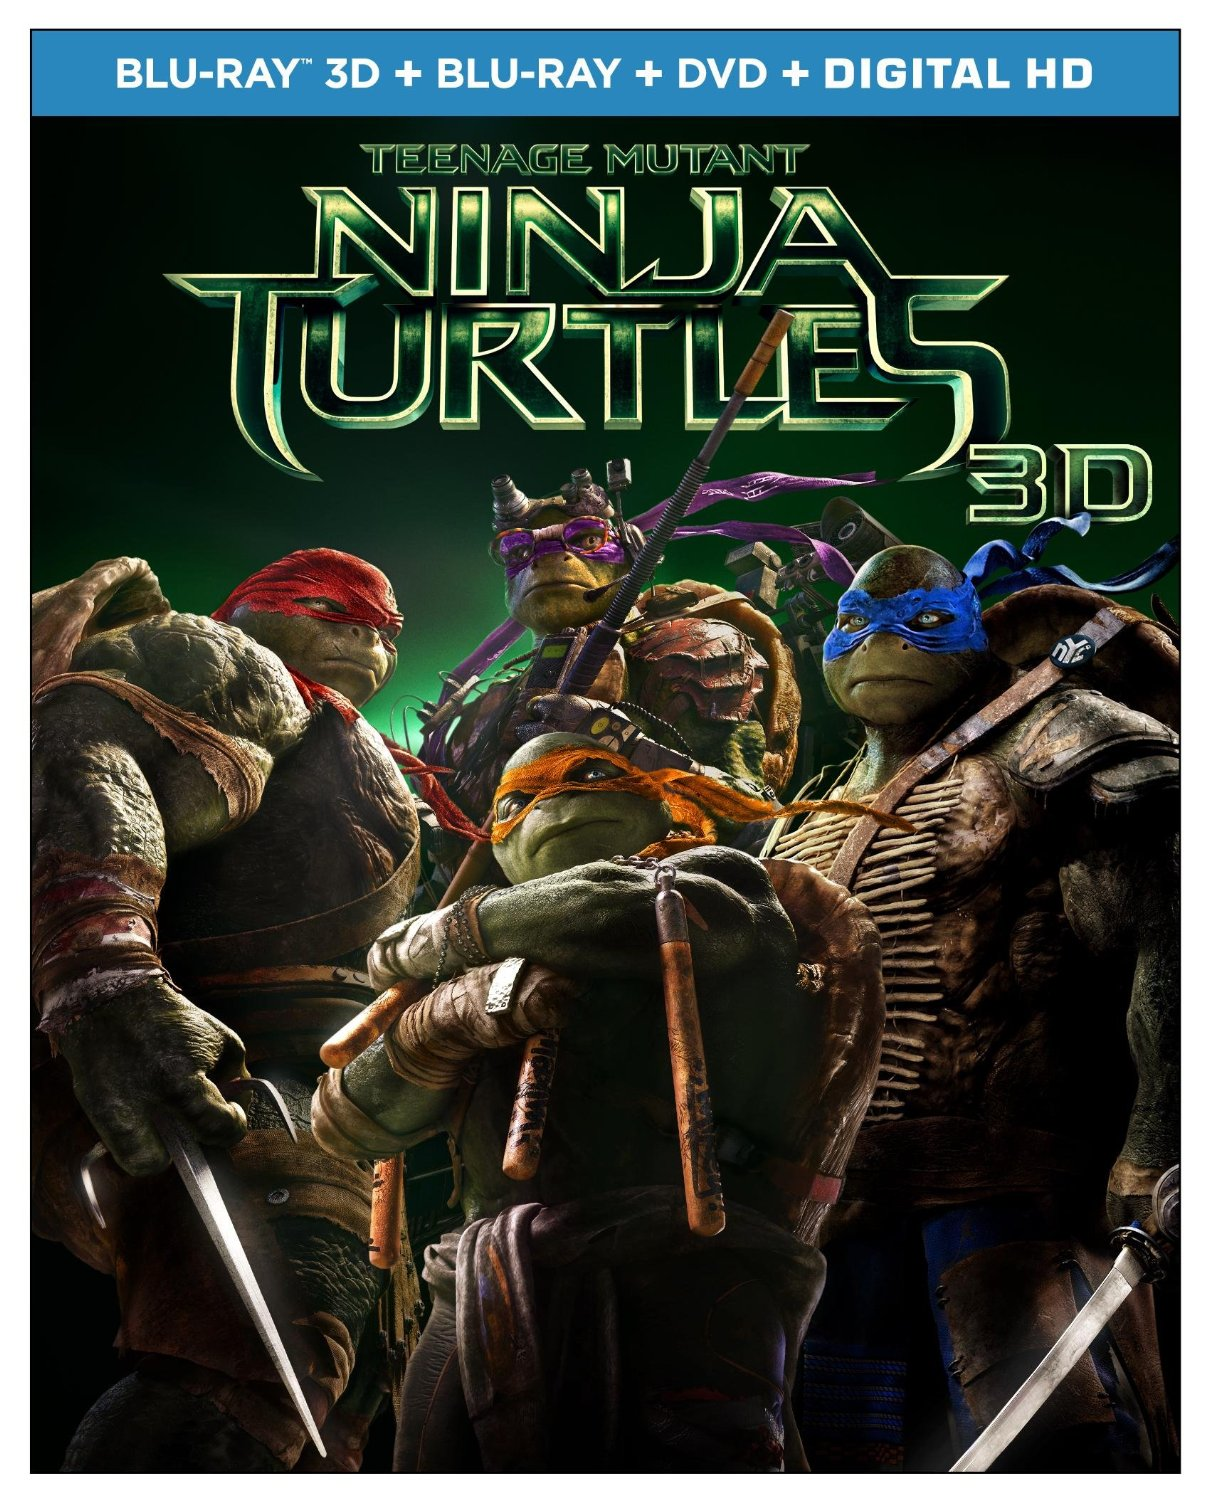 teenage mutant ninja turtles blu-ray USA